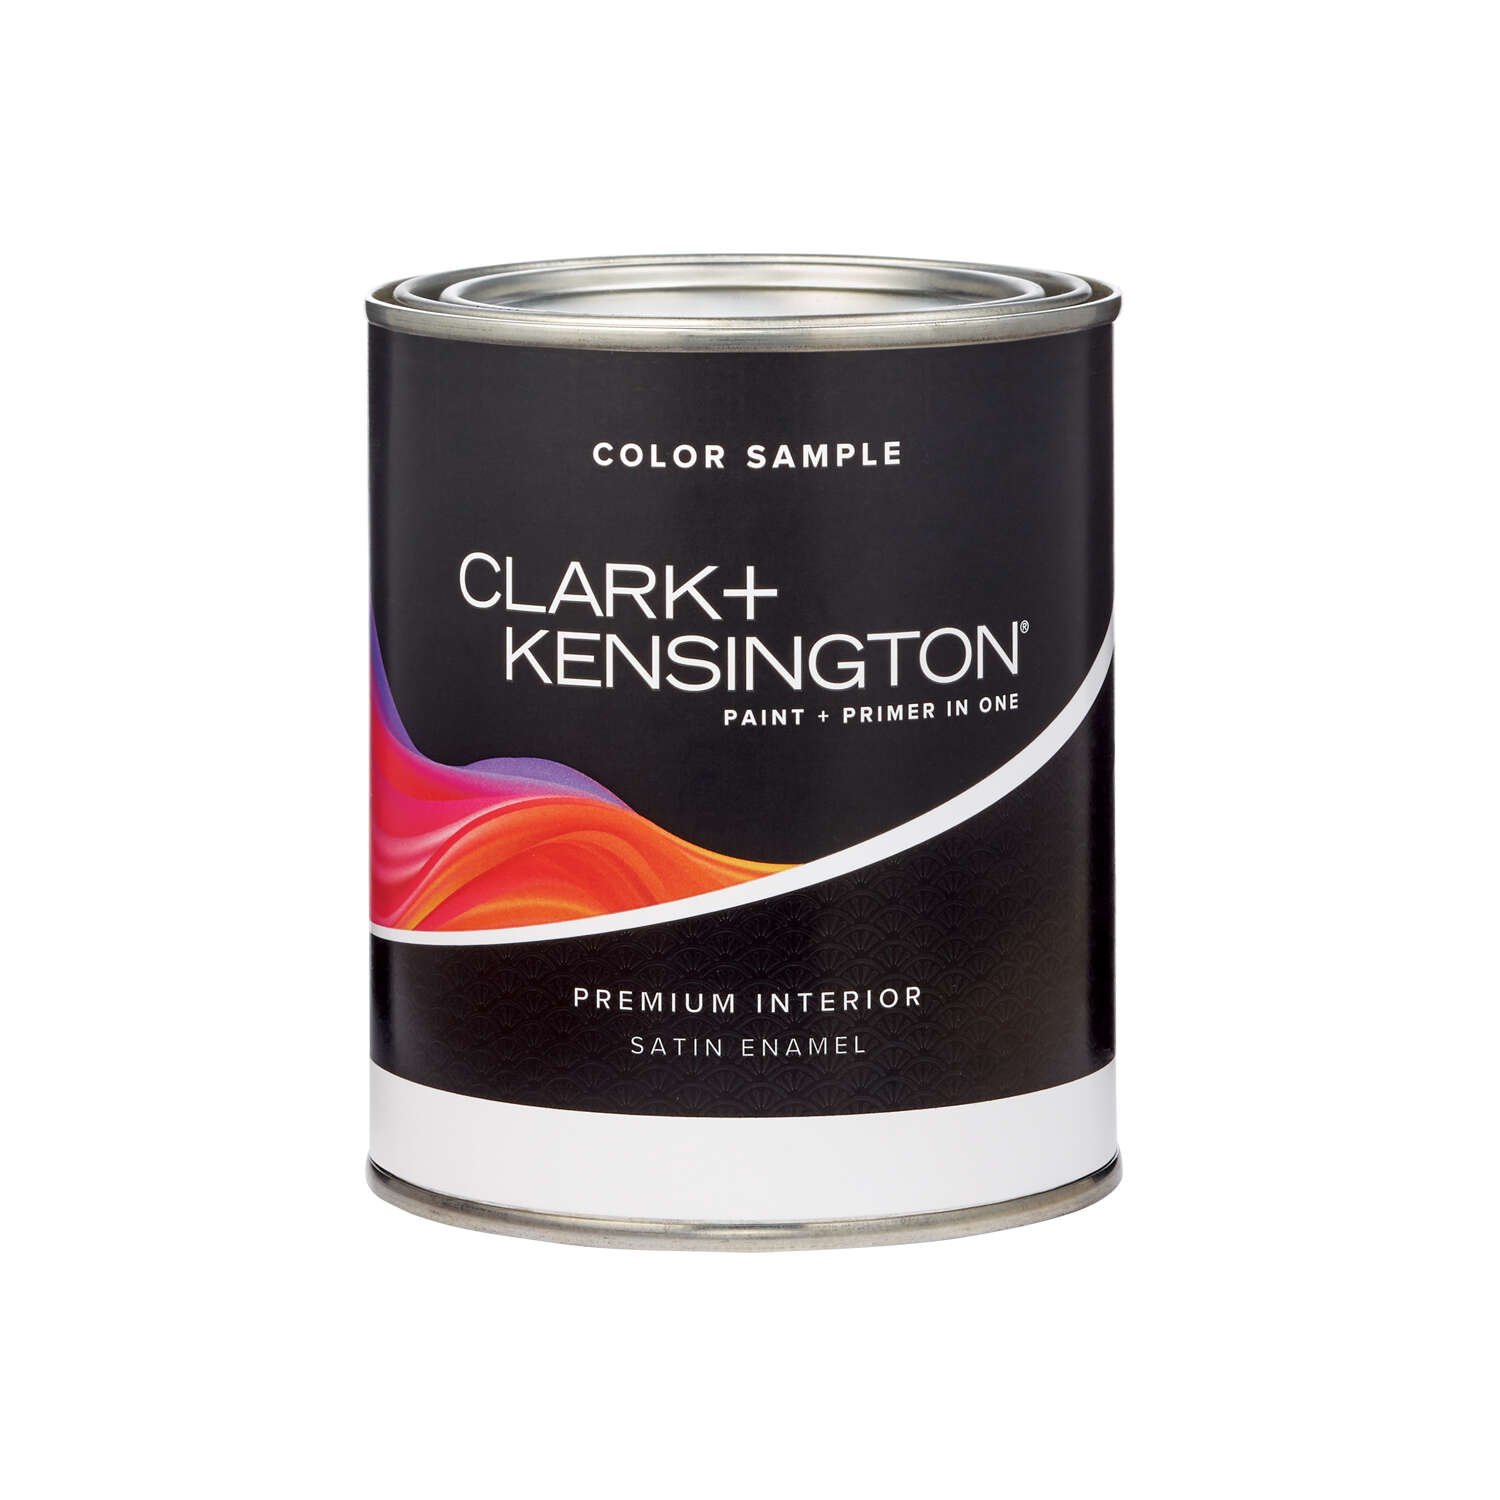 Clark+Kensington  Tint Base  Ultra White Base  Premium Paint  1 pt.